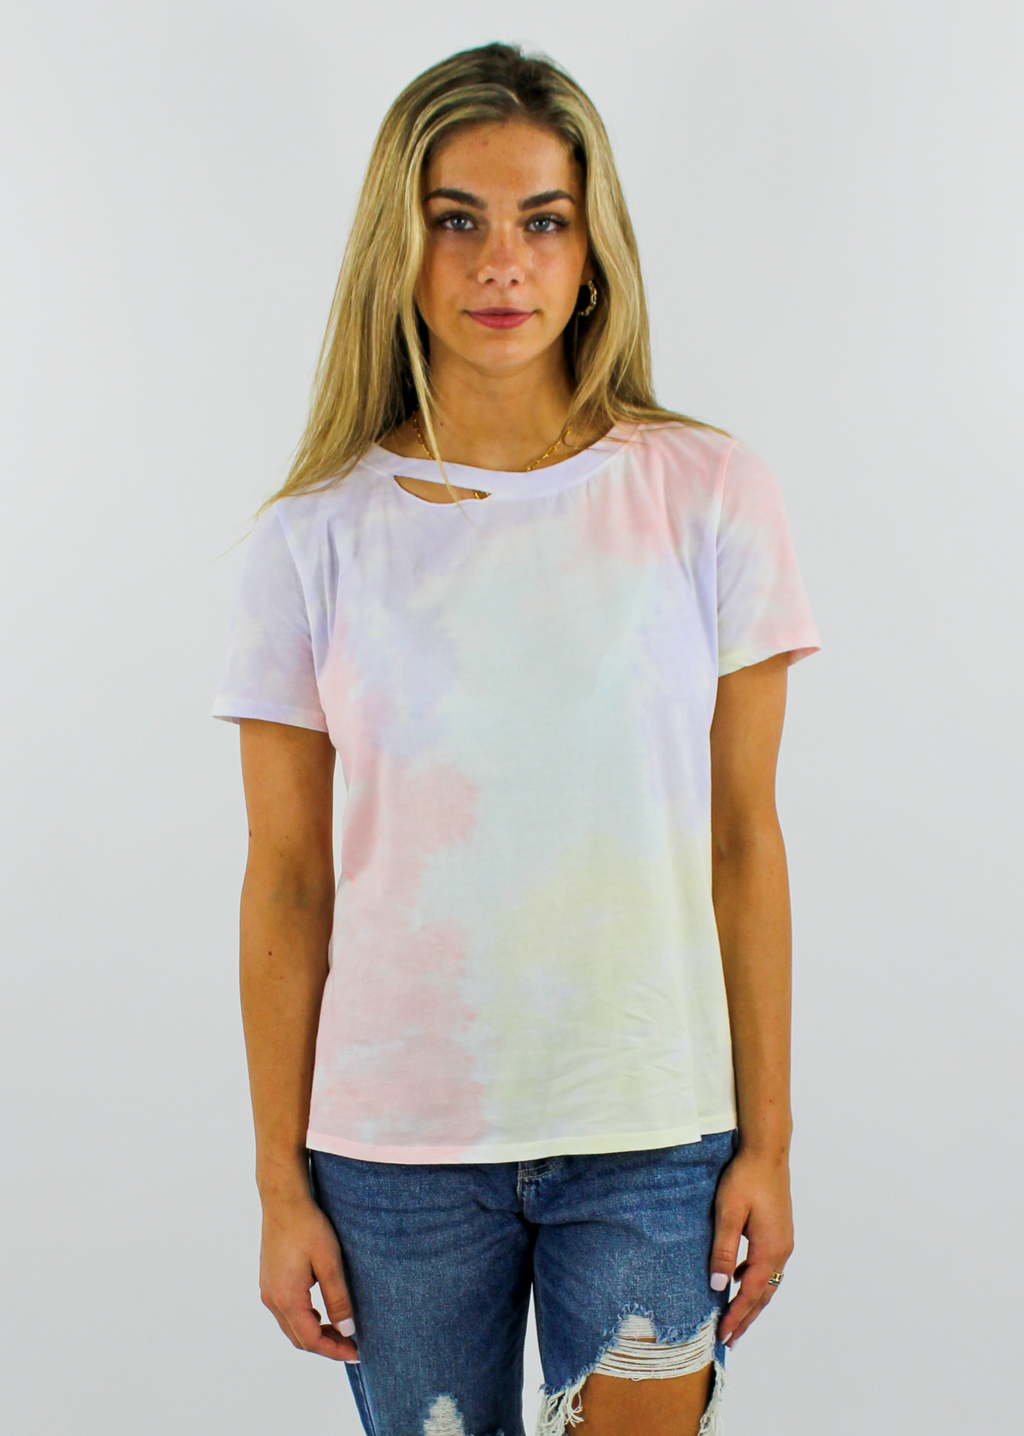 Spin You Around Top ★ Tie Dye